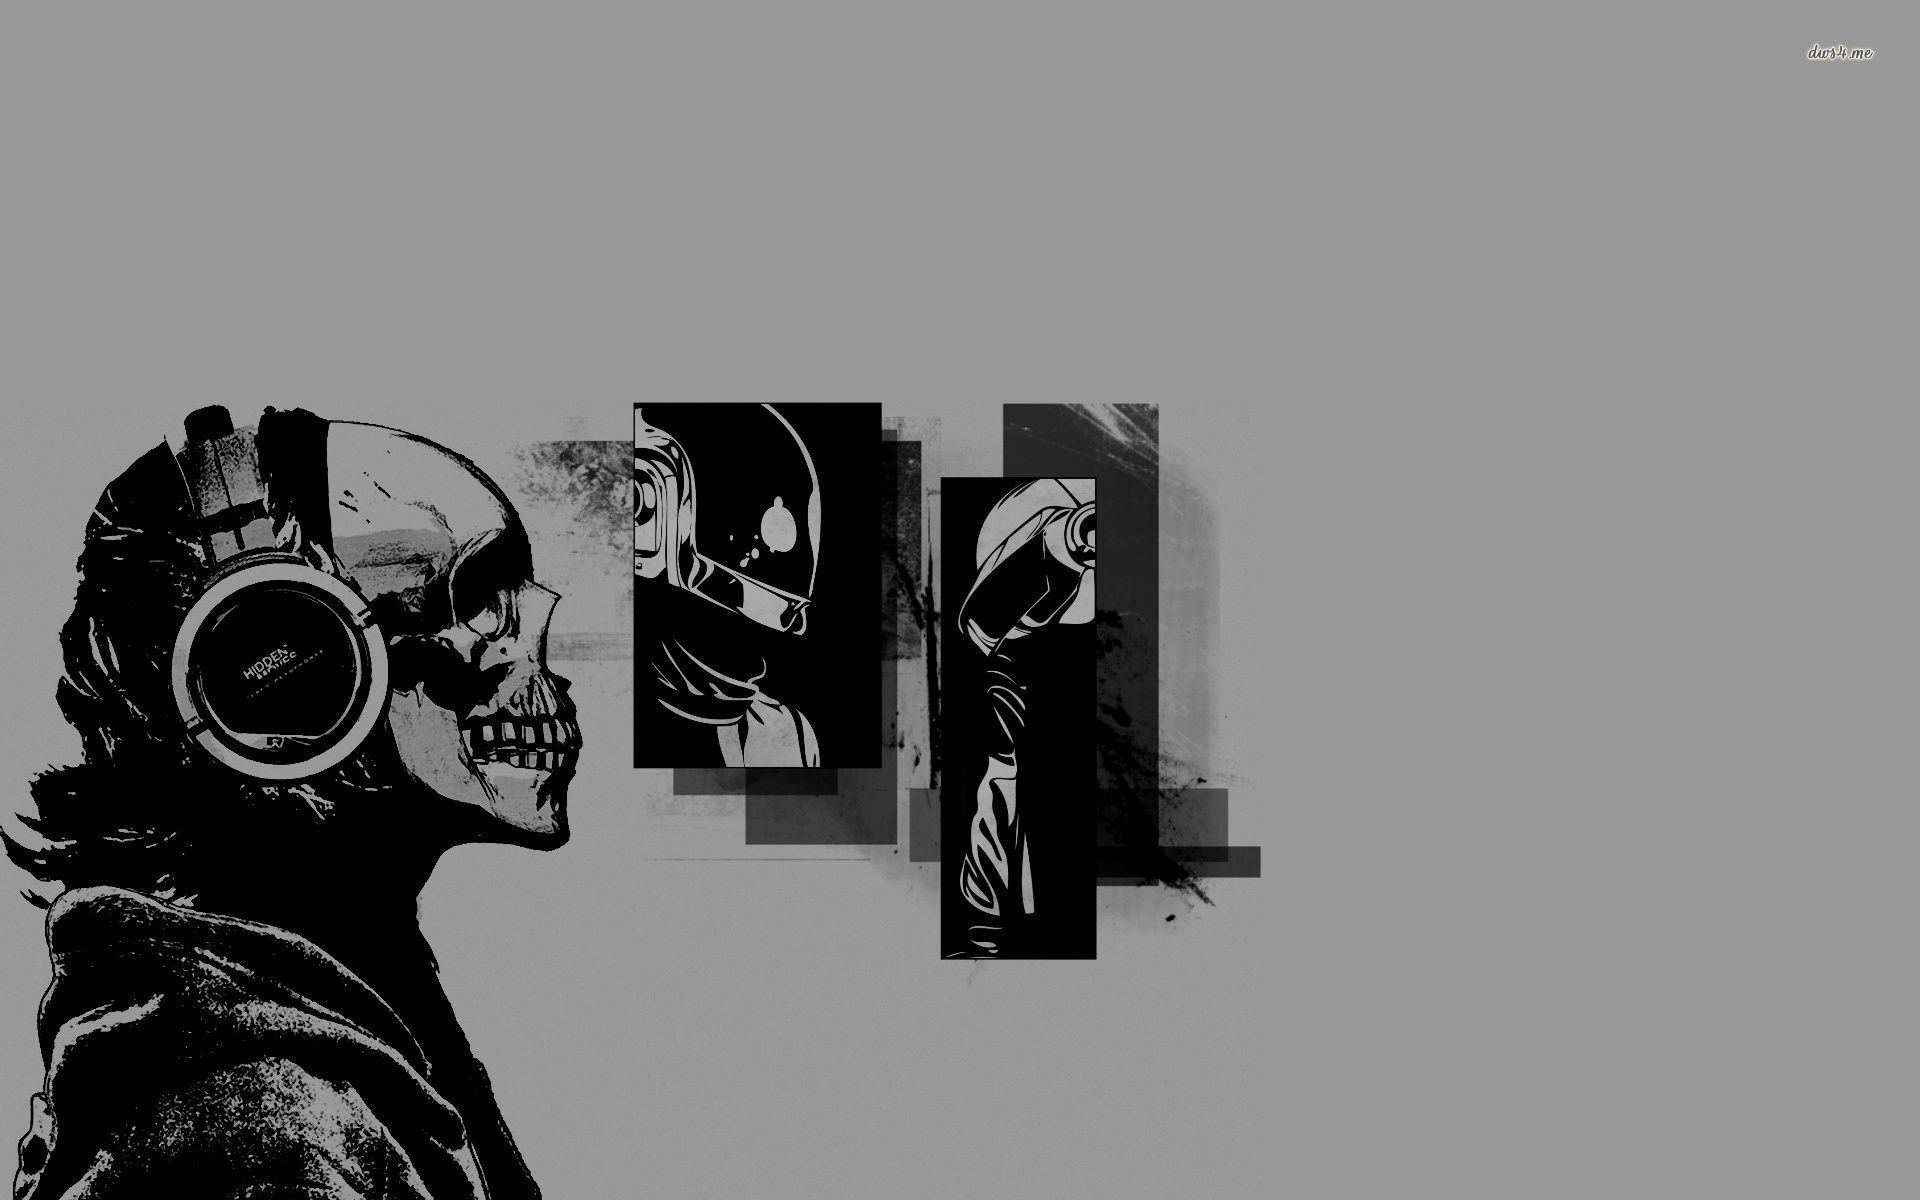 1920x1200 Daft Punk - skull with headphones wallpaper - Music wallpapers - #46003